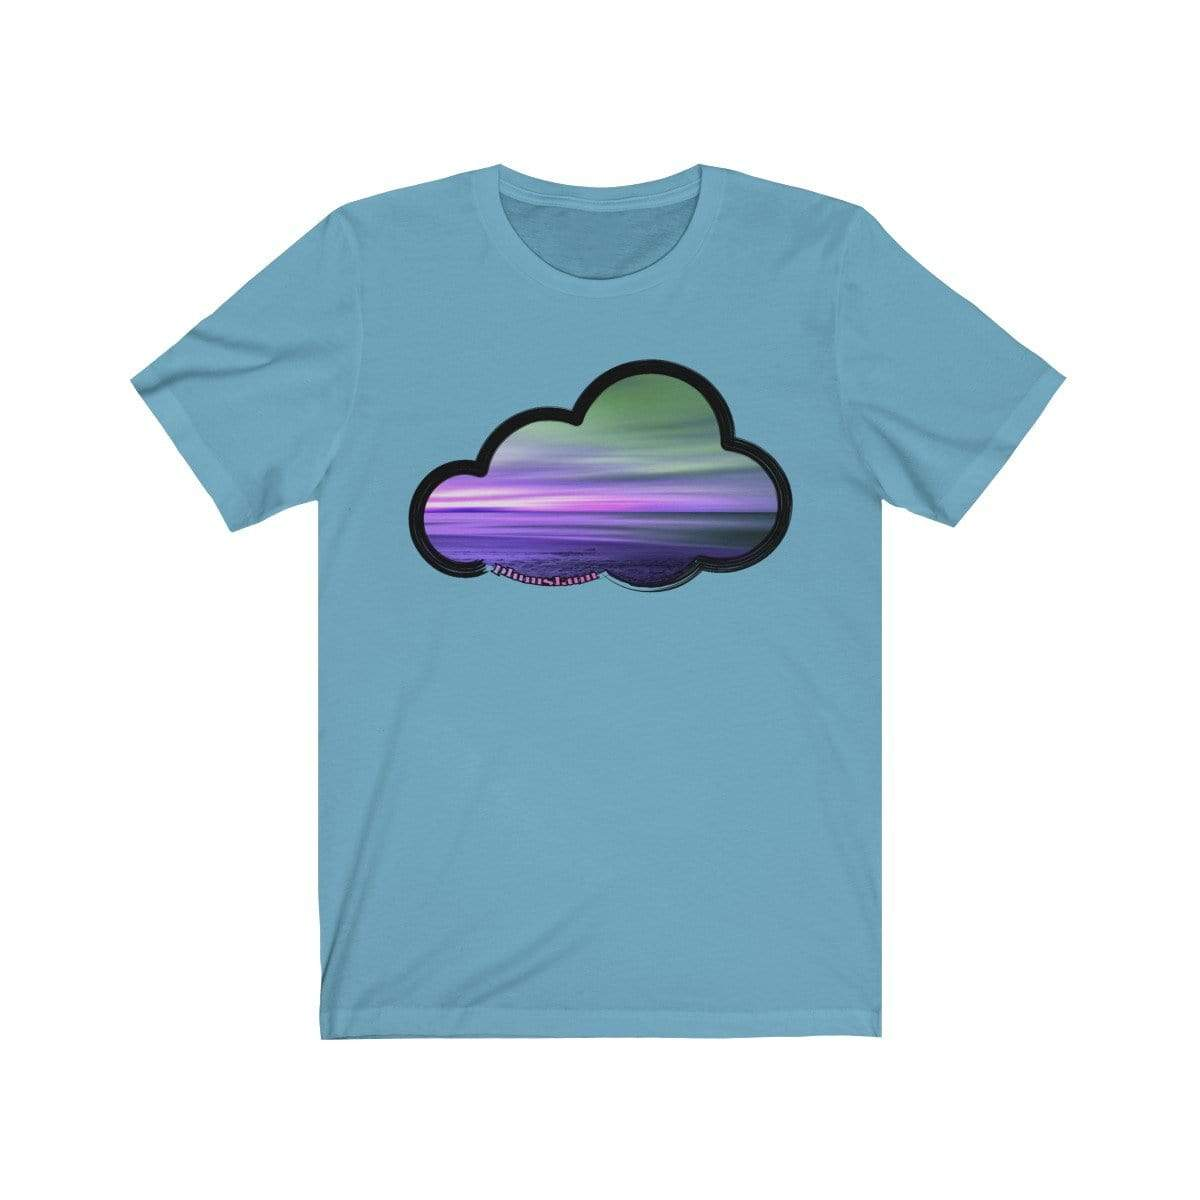 Printify T-Shirt Ocean Blue / M Beaches Art Clouds Tee